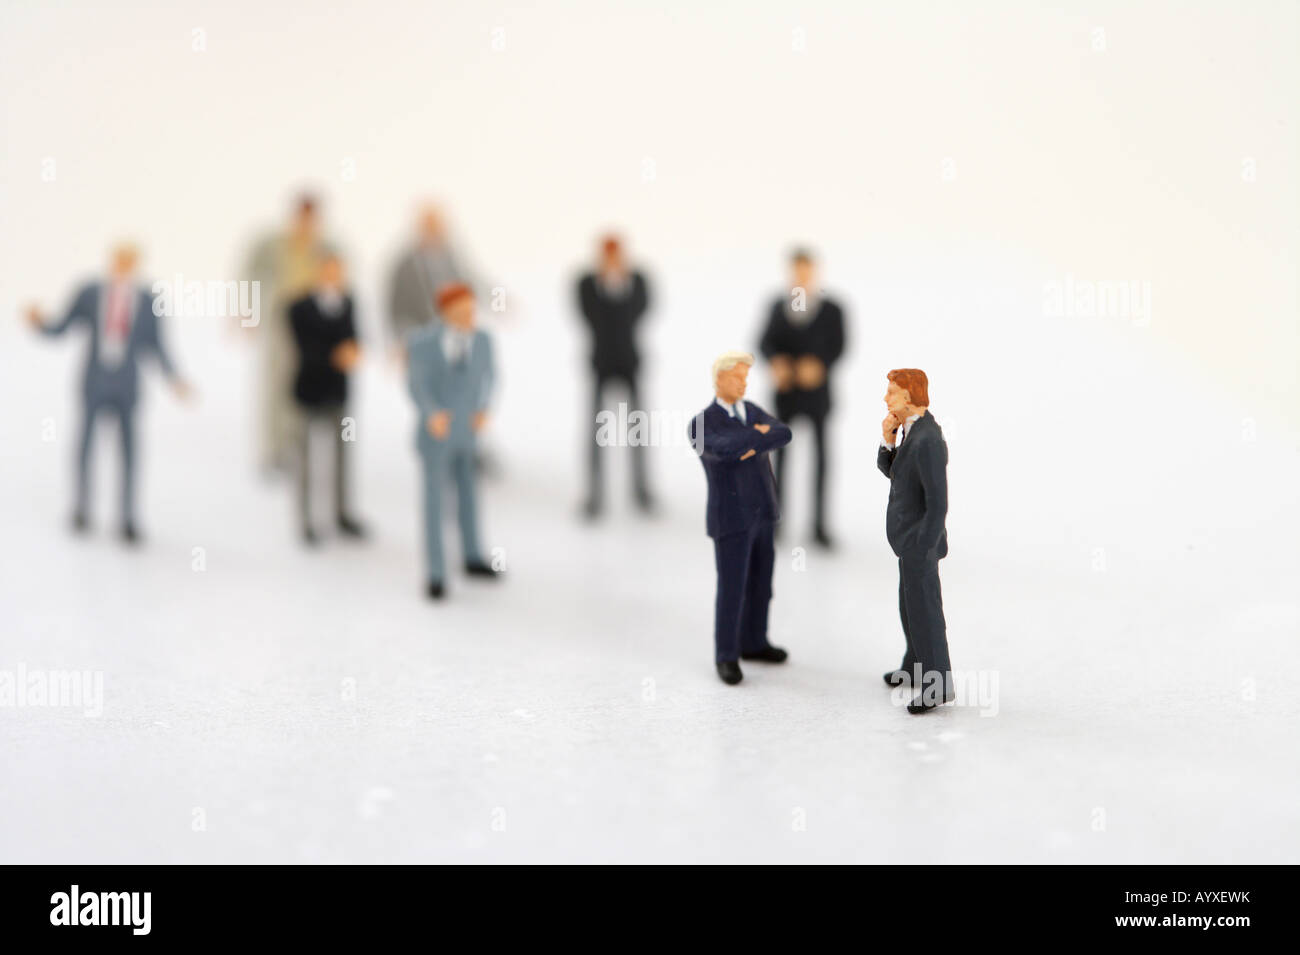 Two businessmen figurines talking, other ones in background - Stock Image